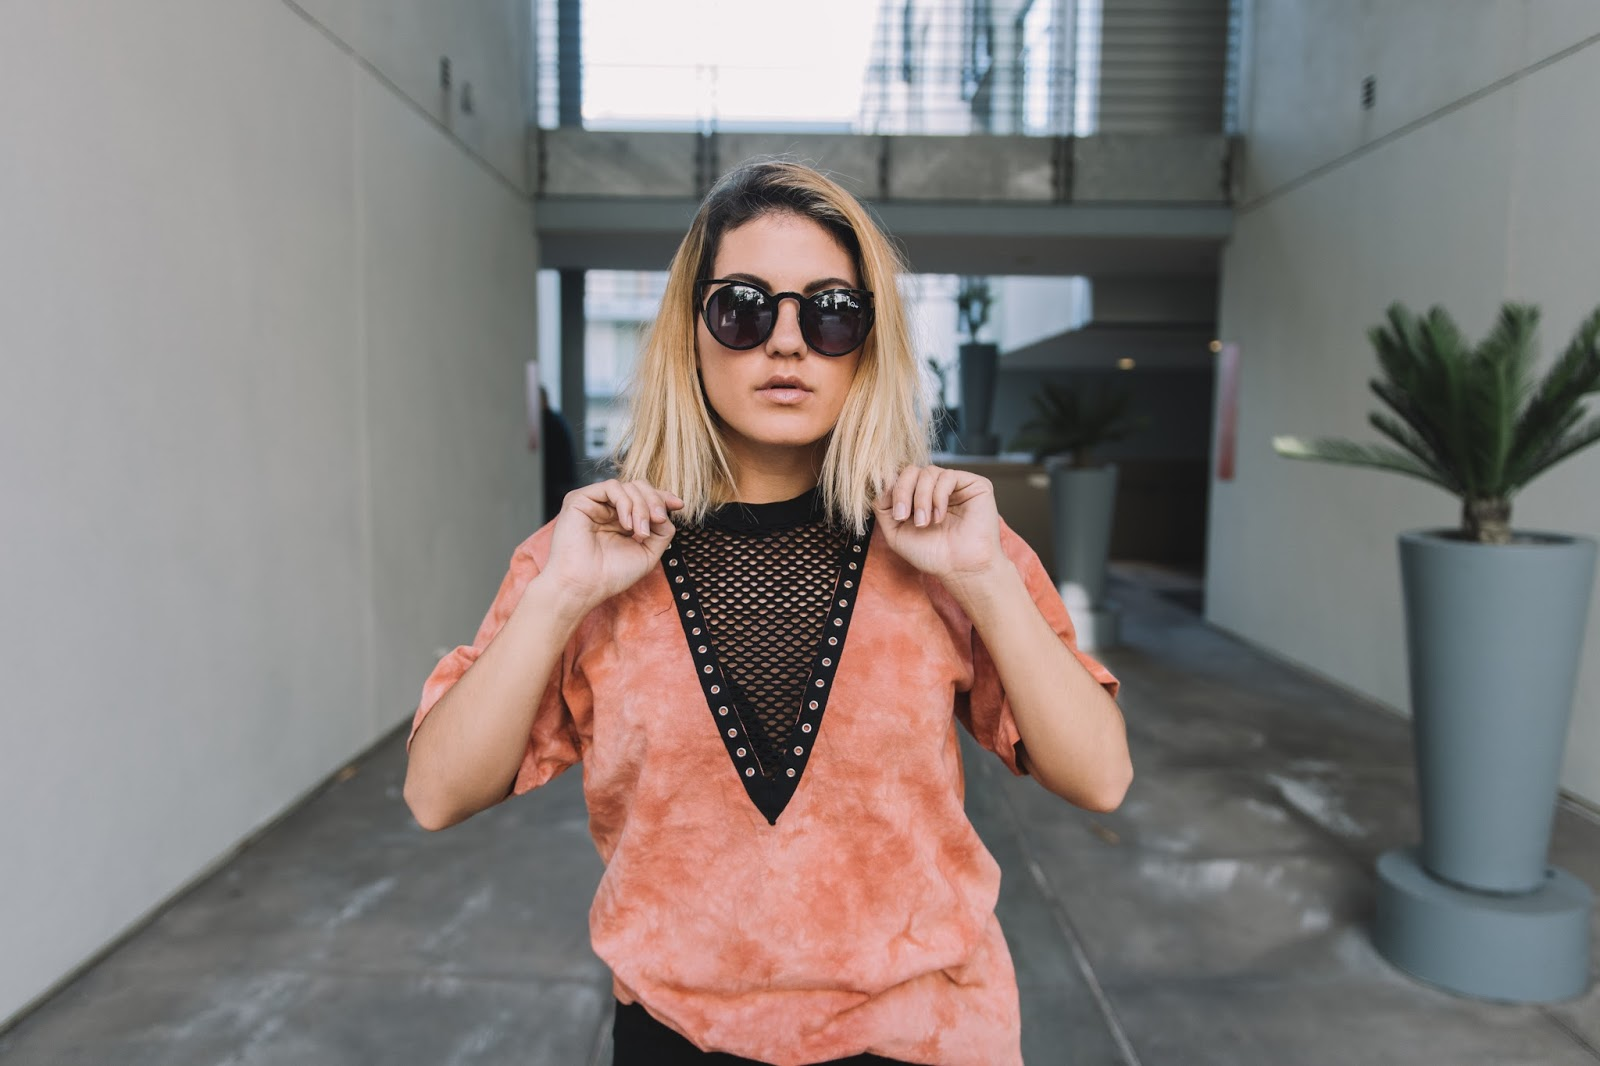 Knit Plunging Neckline - Forever 21 Tee